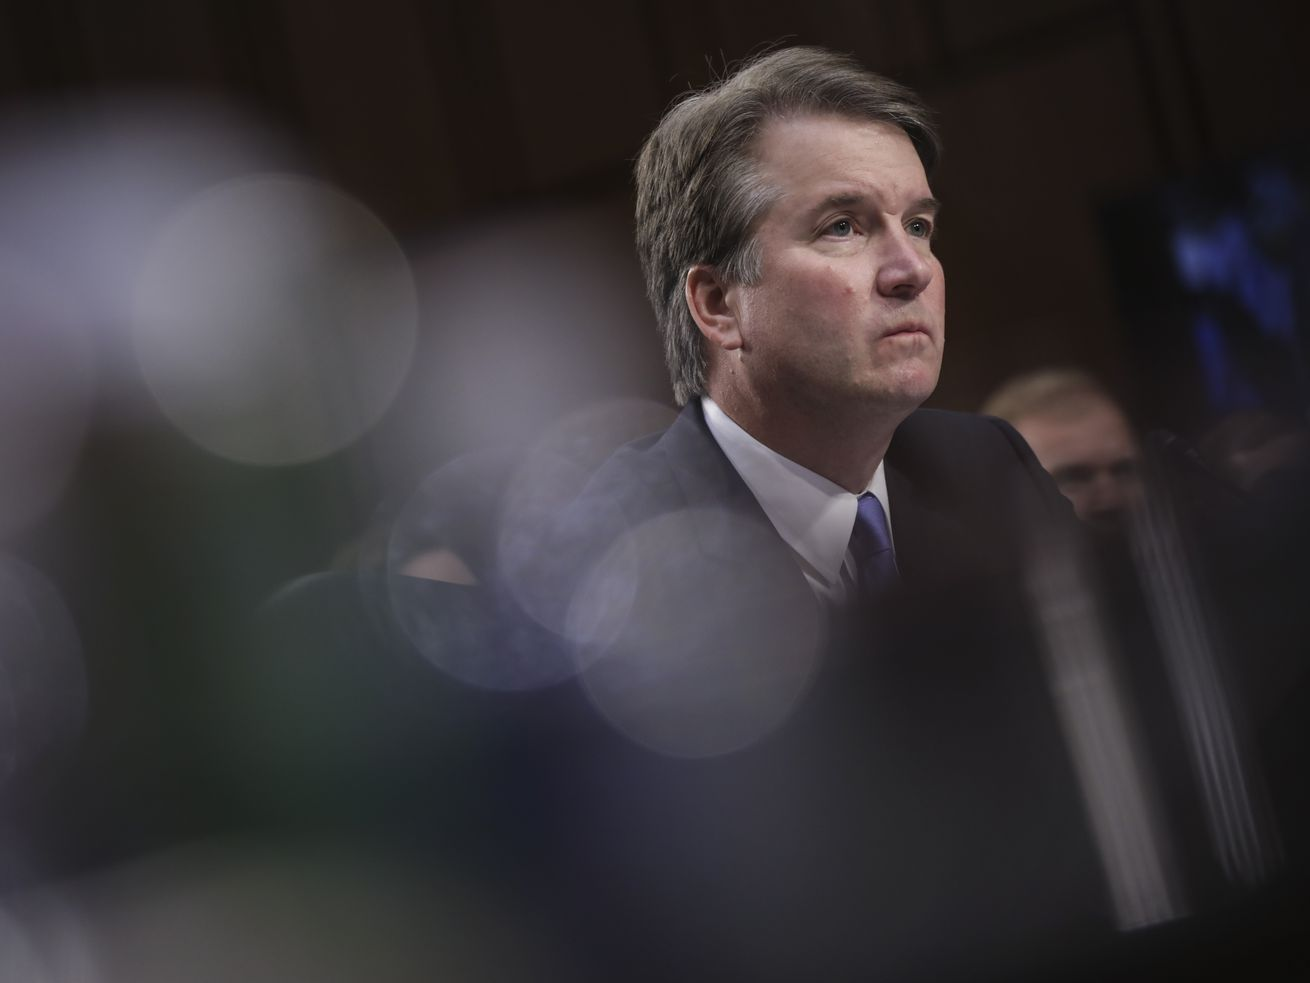 Supreme Court nominee Judge Brett Kavanaugh, who has been accused of sexual misconduct by Christine Blasey Ford and Deborah Ramirez.